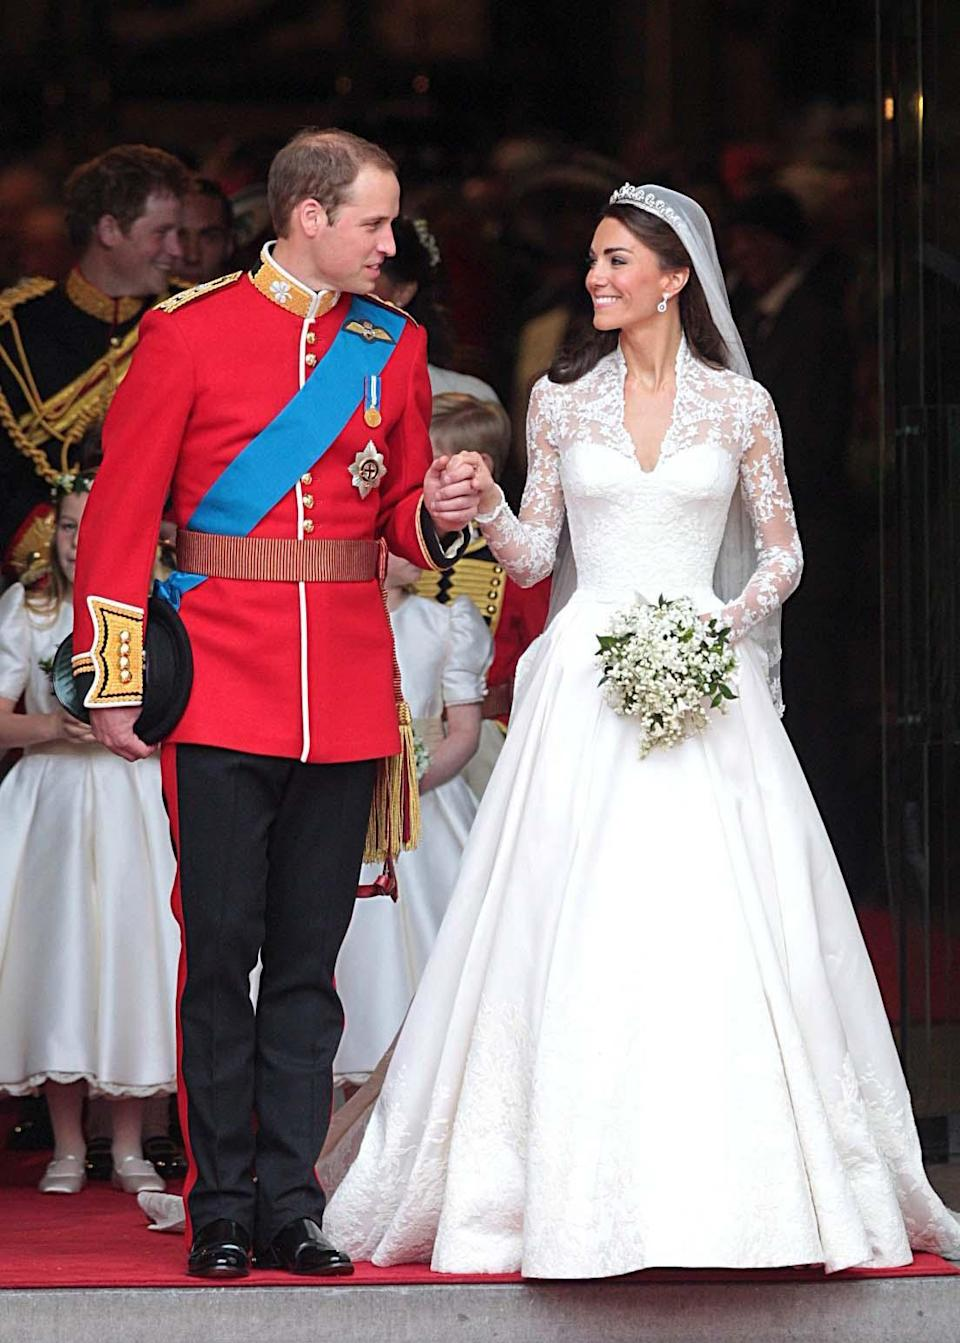 <p>Where it all began: Kate's spectacular wedding dress, designed by Alexander McQueen's Sarah Burton, incorporated lace, floral motifs and an impressive train. It reportedly cost £250,000 and sparked a huge number of copies. </p><p><i>[Photo: PA]</i></p>